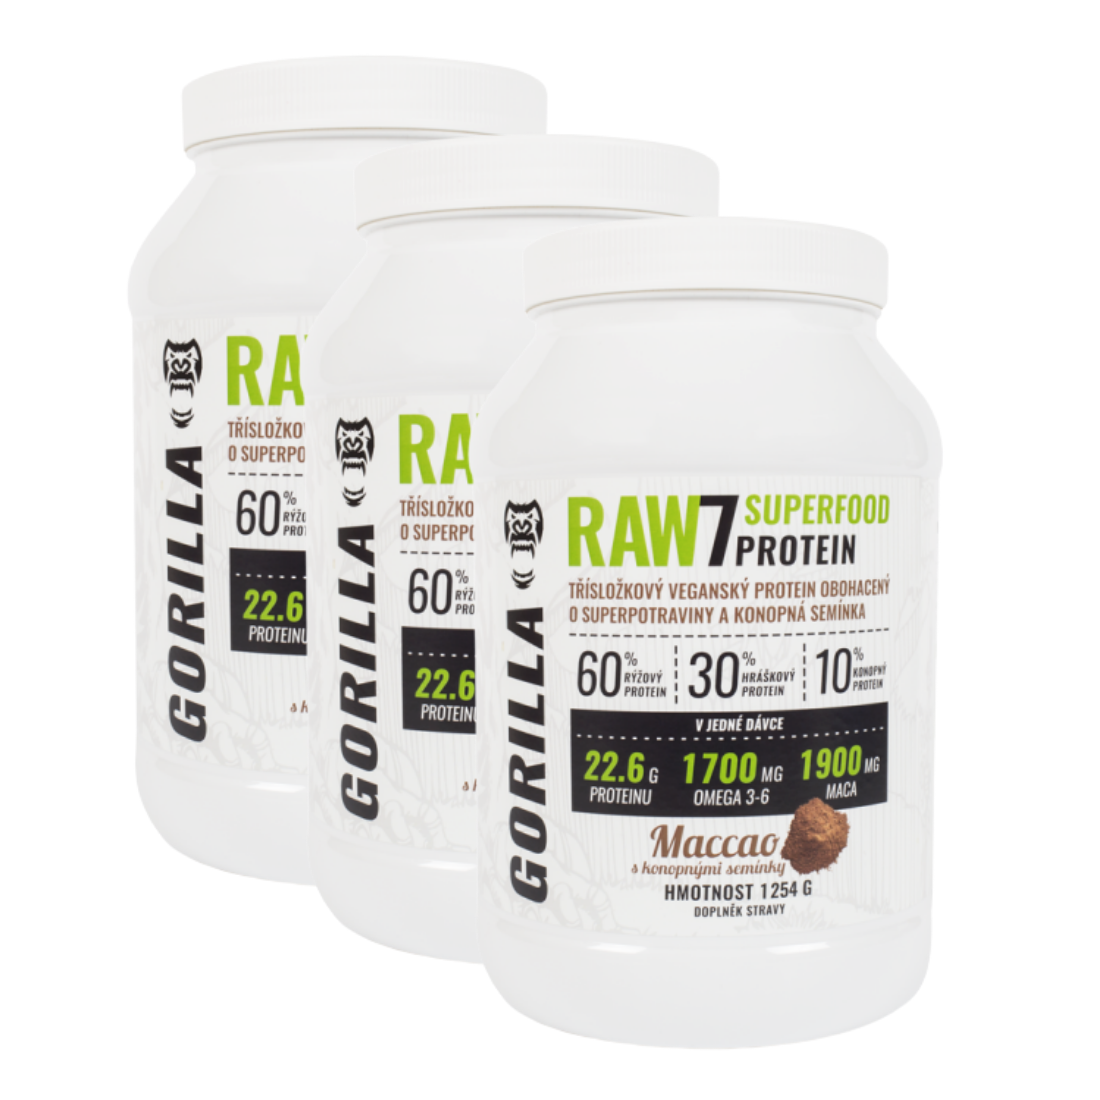 RAW7 SuperFood Protein 3x 1 254 g - rostlinný protein